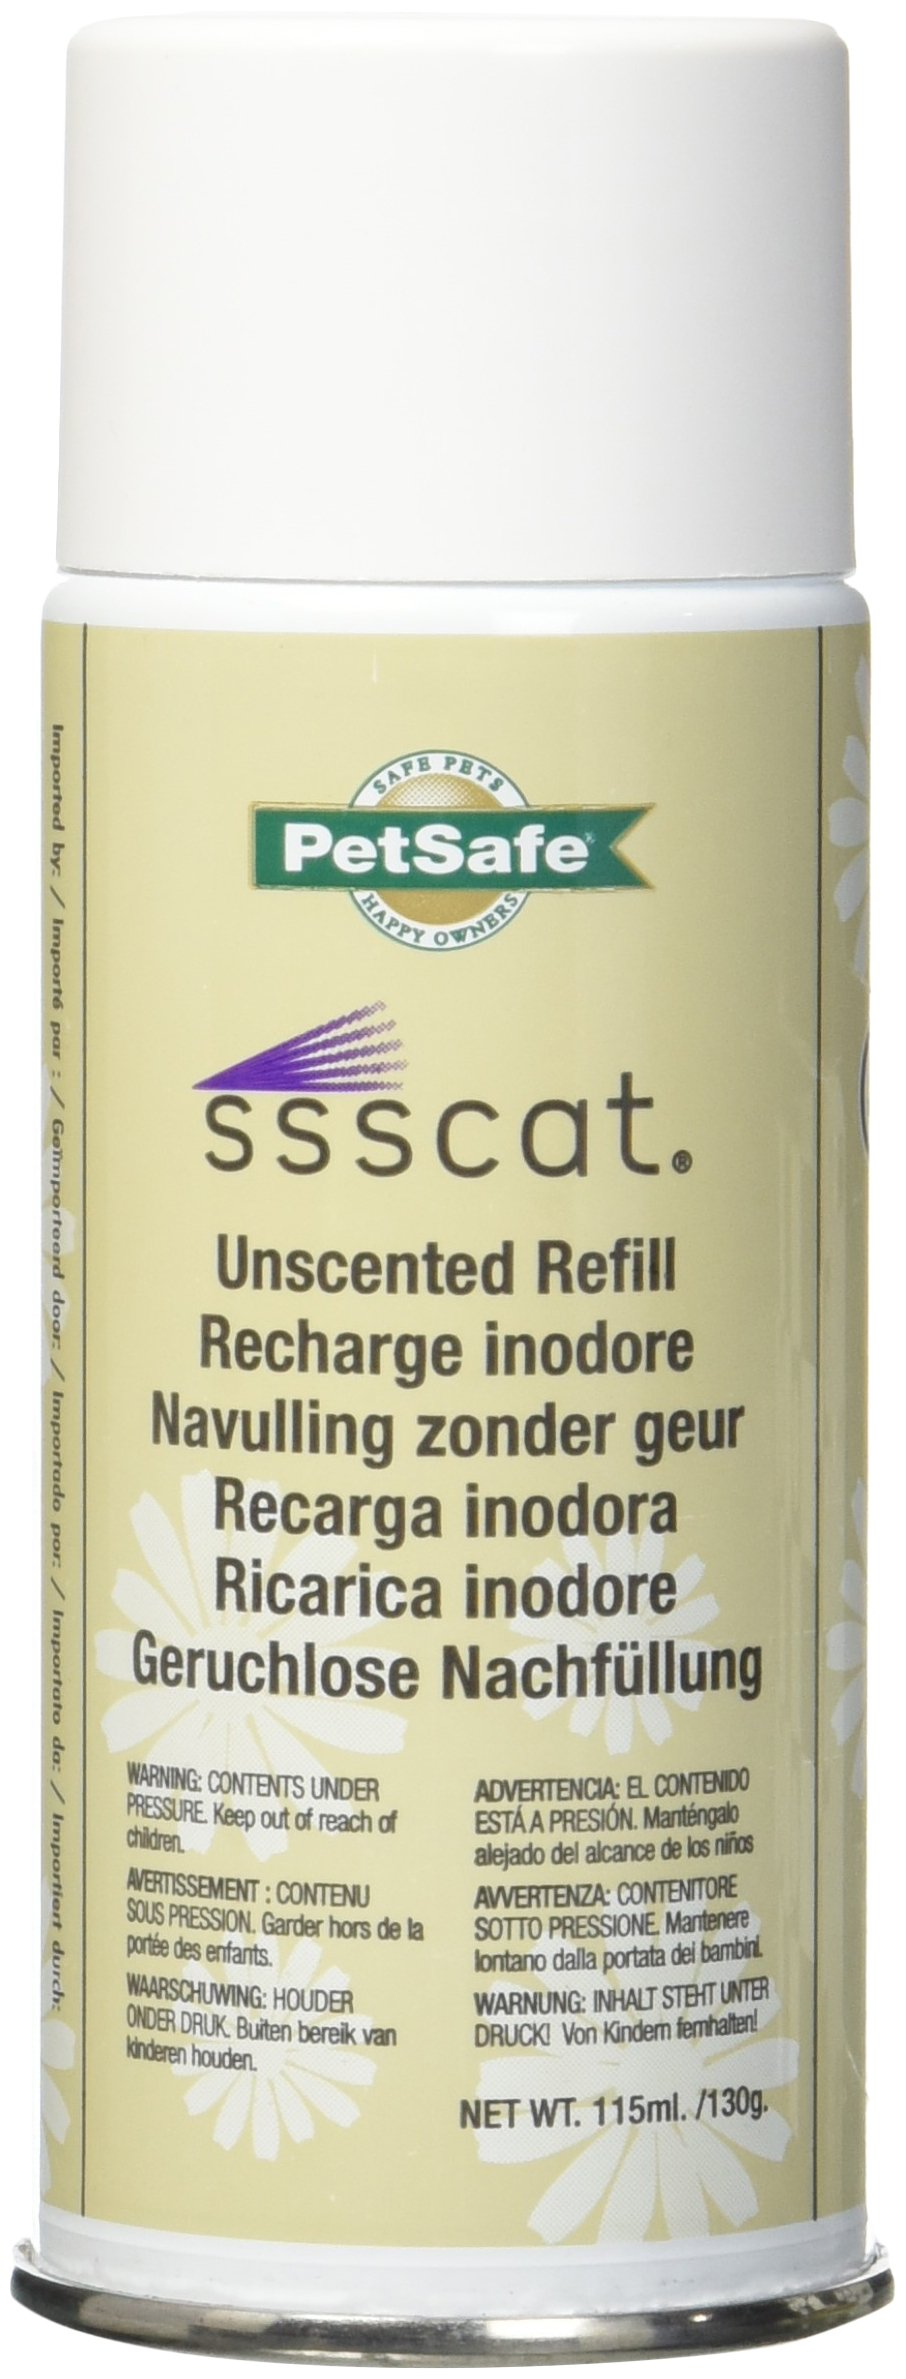 Petsafe Ssscat Repellent Deterrent Refills. 3 Pack.